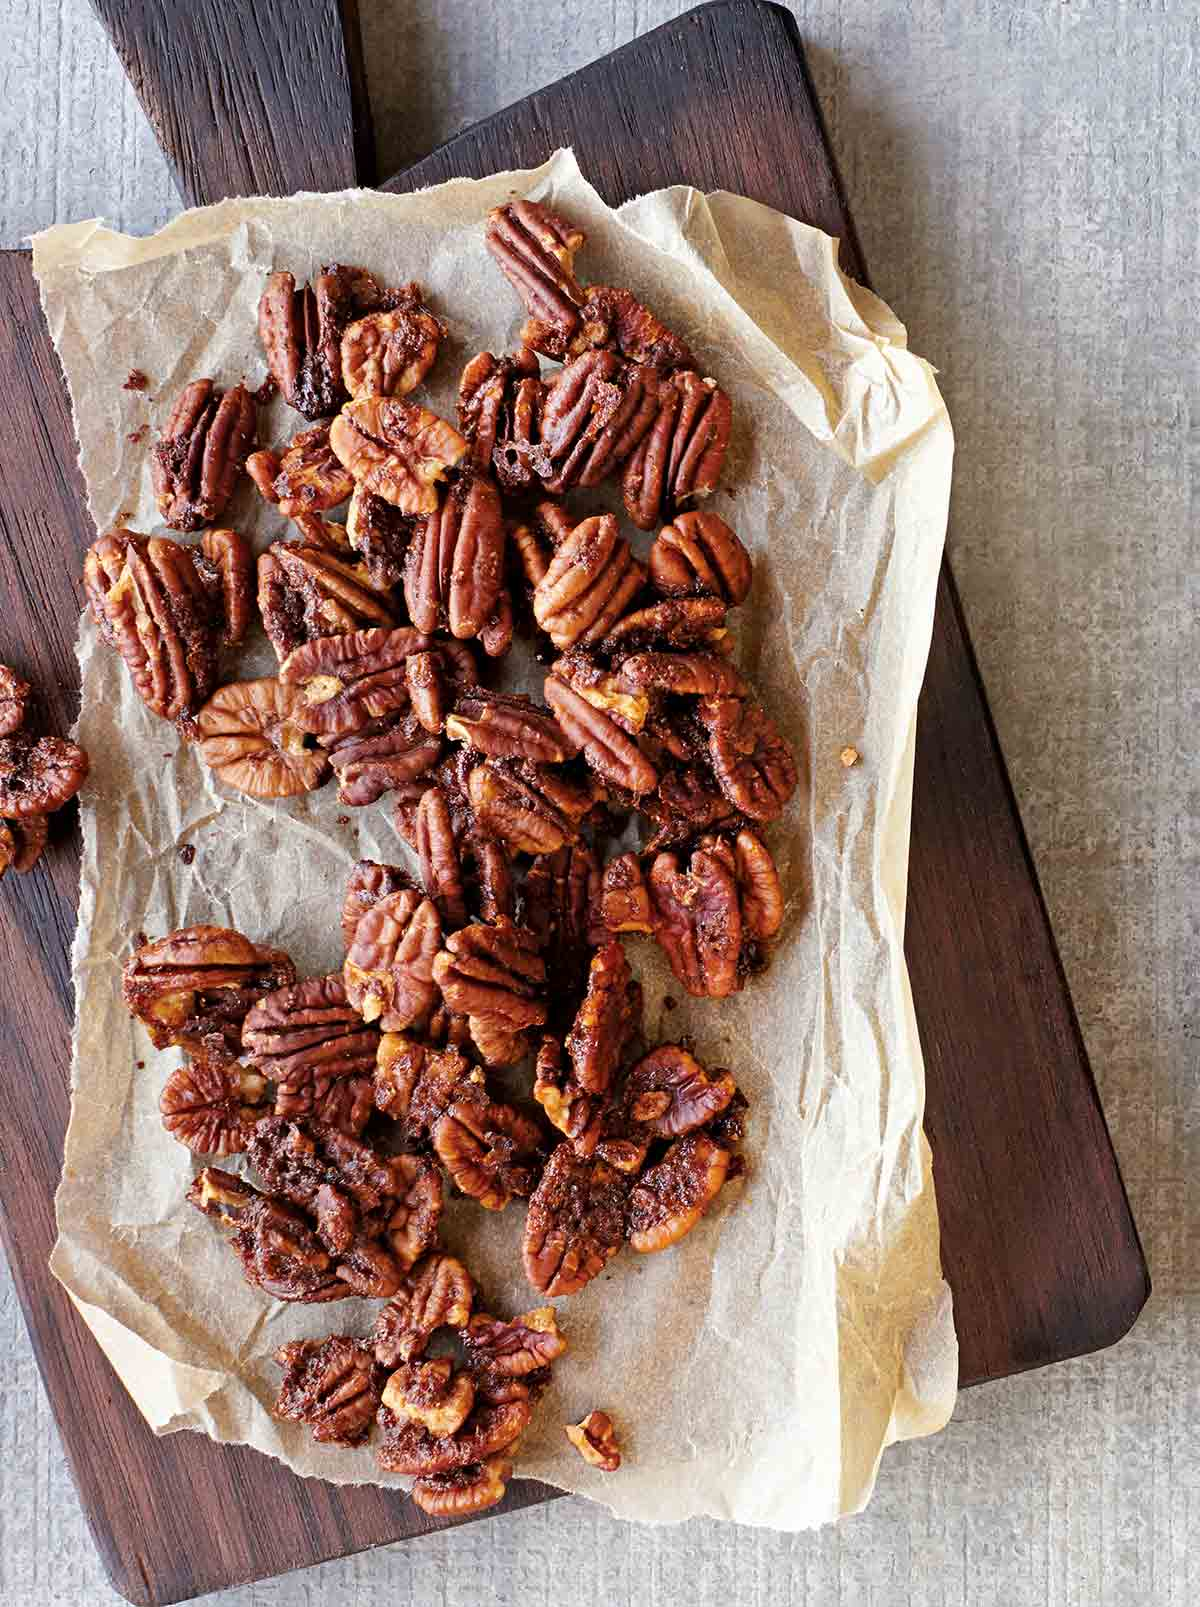 Baked spiced pecans on a sheet of parchment that is resting on a wooden serving board.